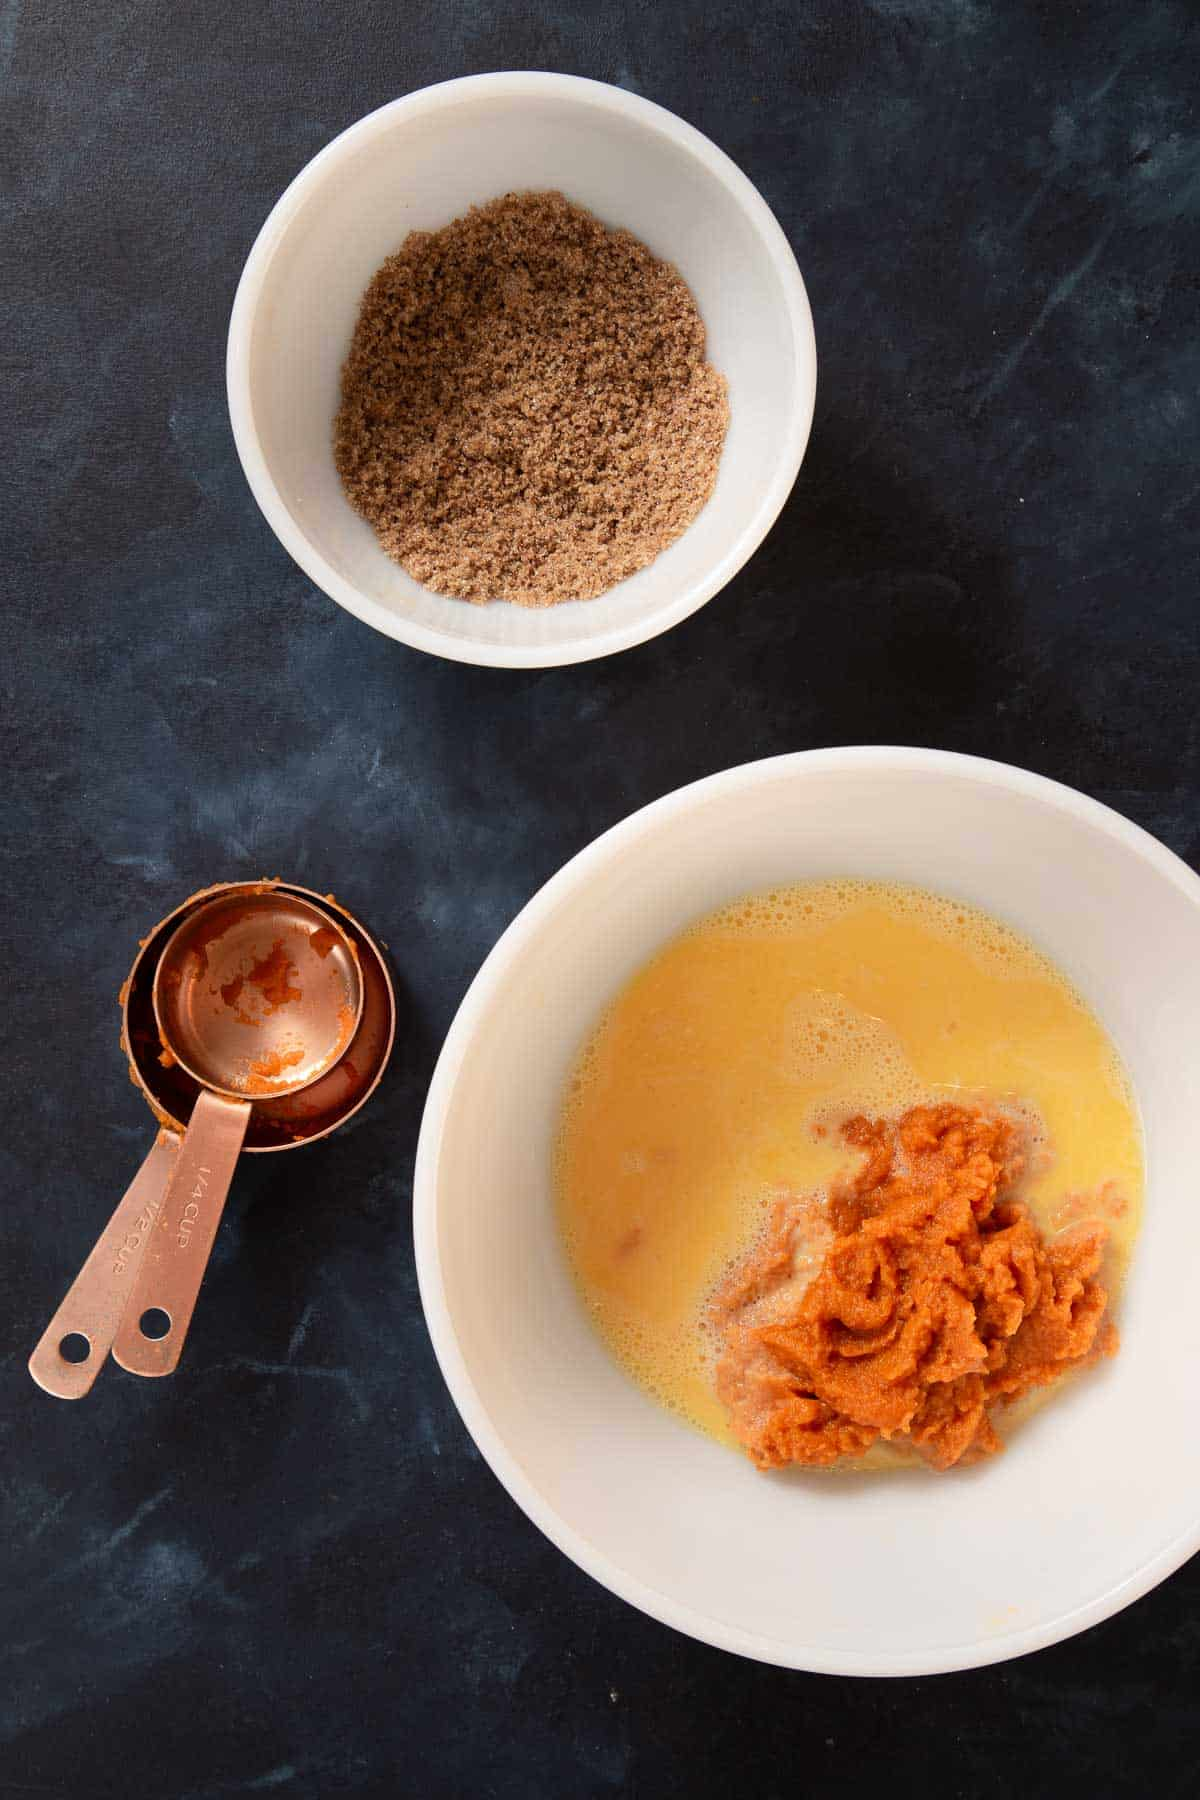 Small white bowl with brown sugar. A larger white bowl with egg yolks and pumpkin puree.